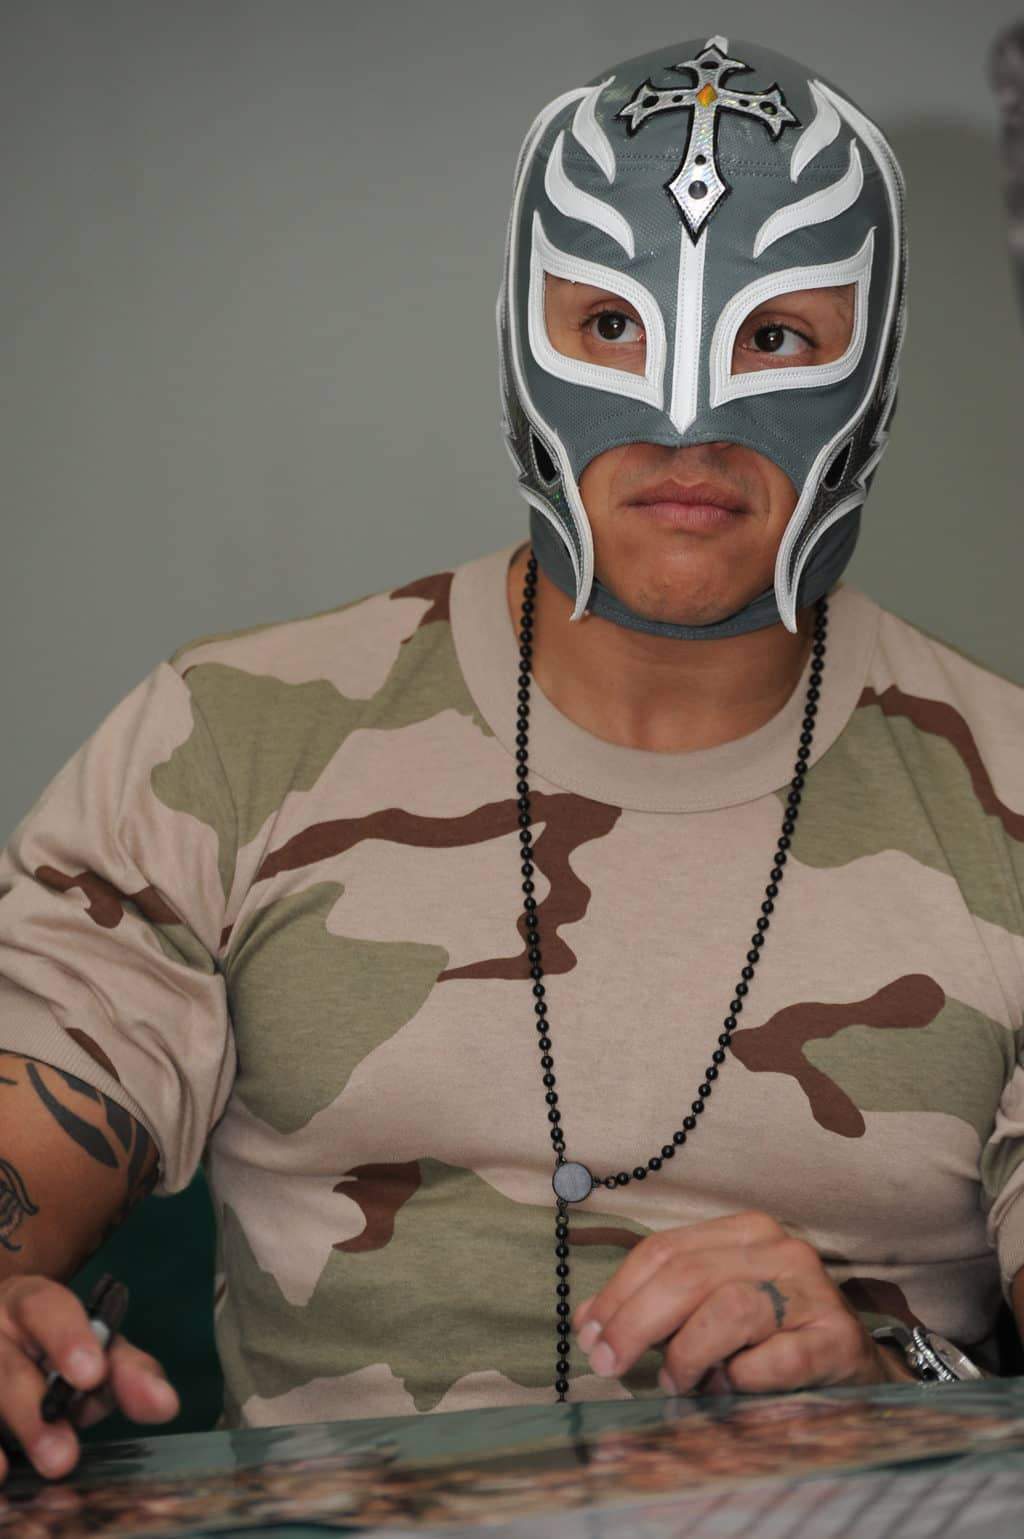 Rey Mysterio firmando autografos en Baghdad, Iraq / Photo by Staff Sgt. James Selesnick - Creative Commons License